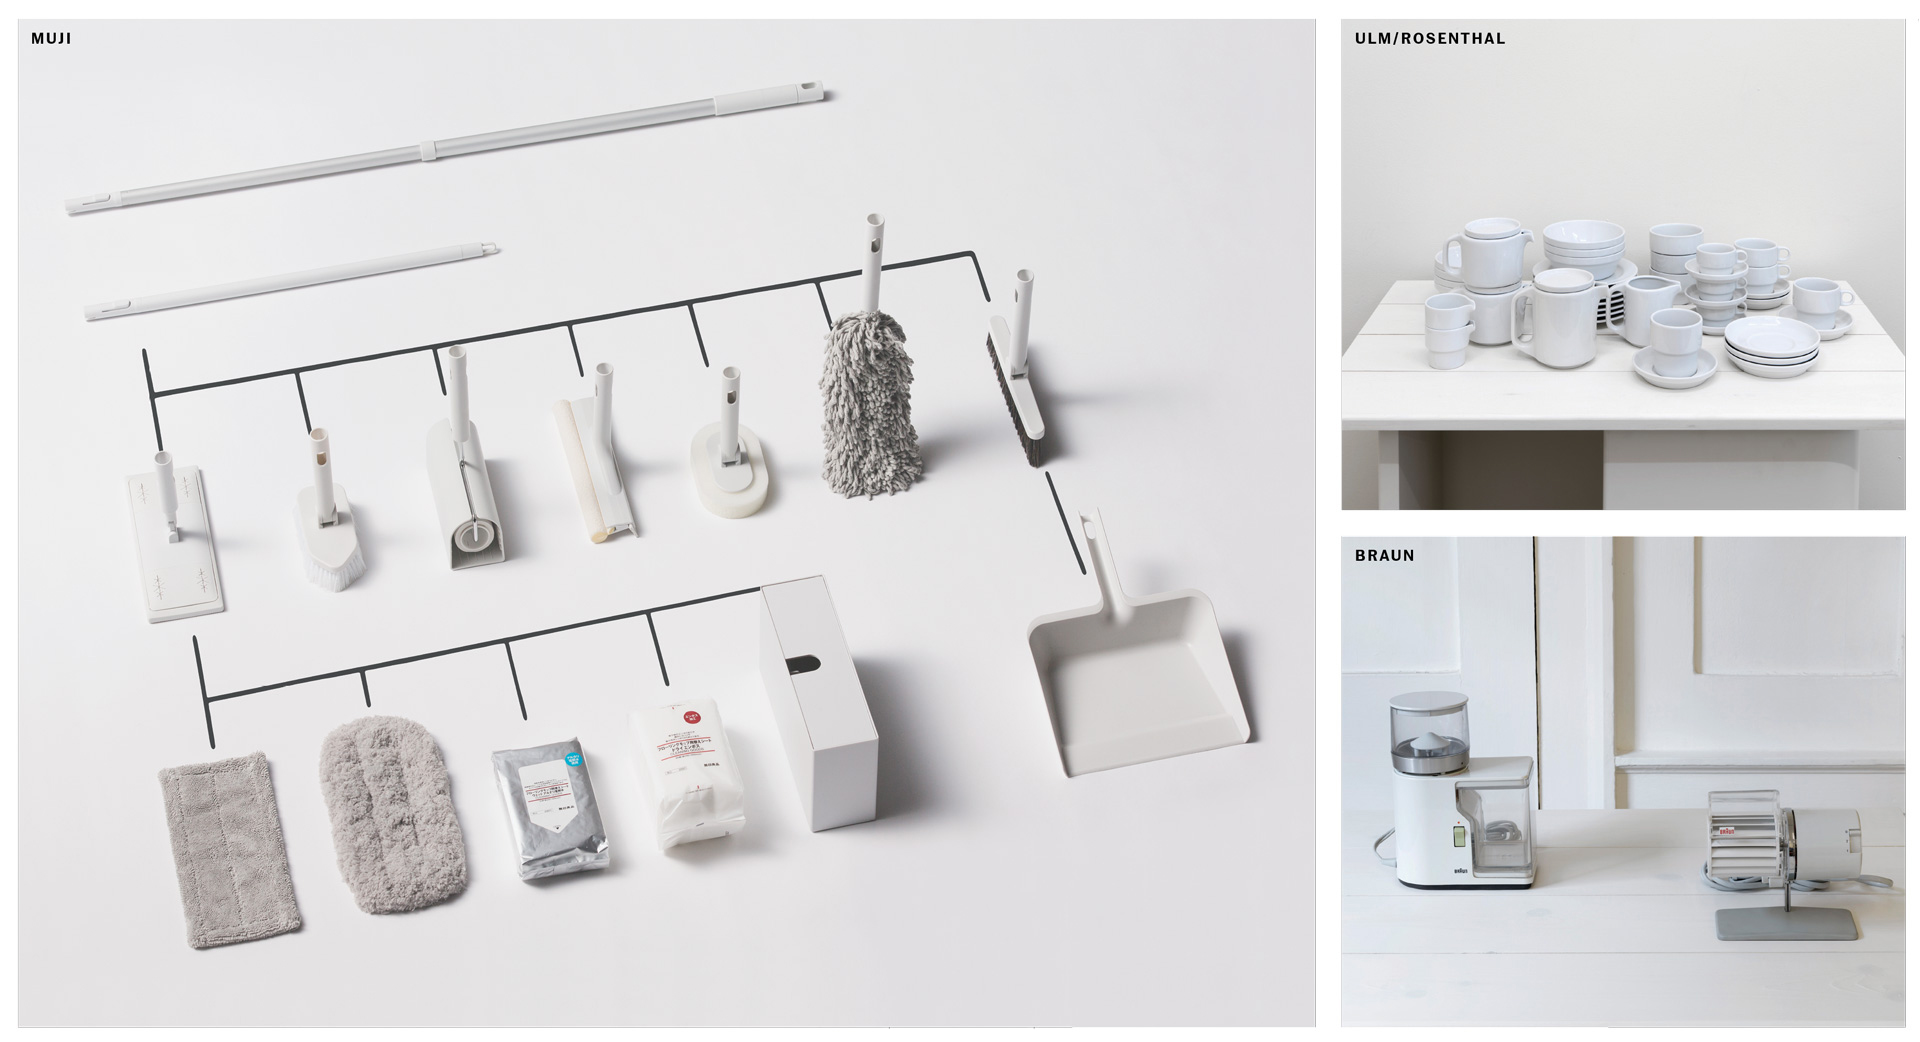 How muji brought the ulm school to the high street - Home design products ...